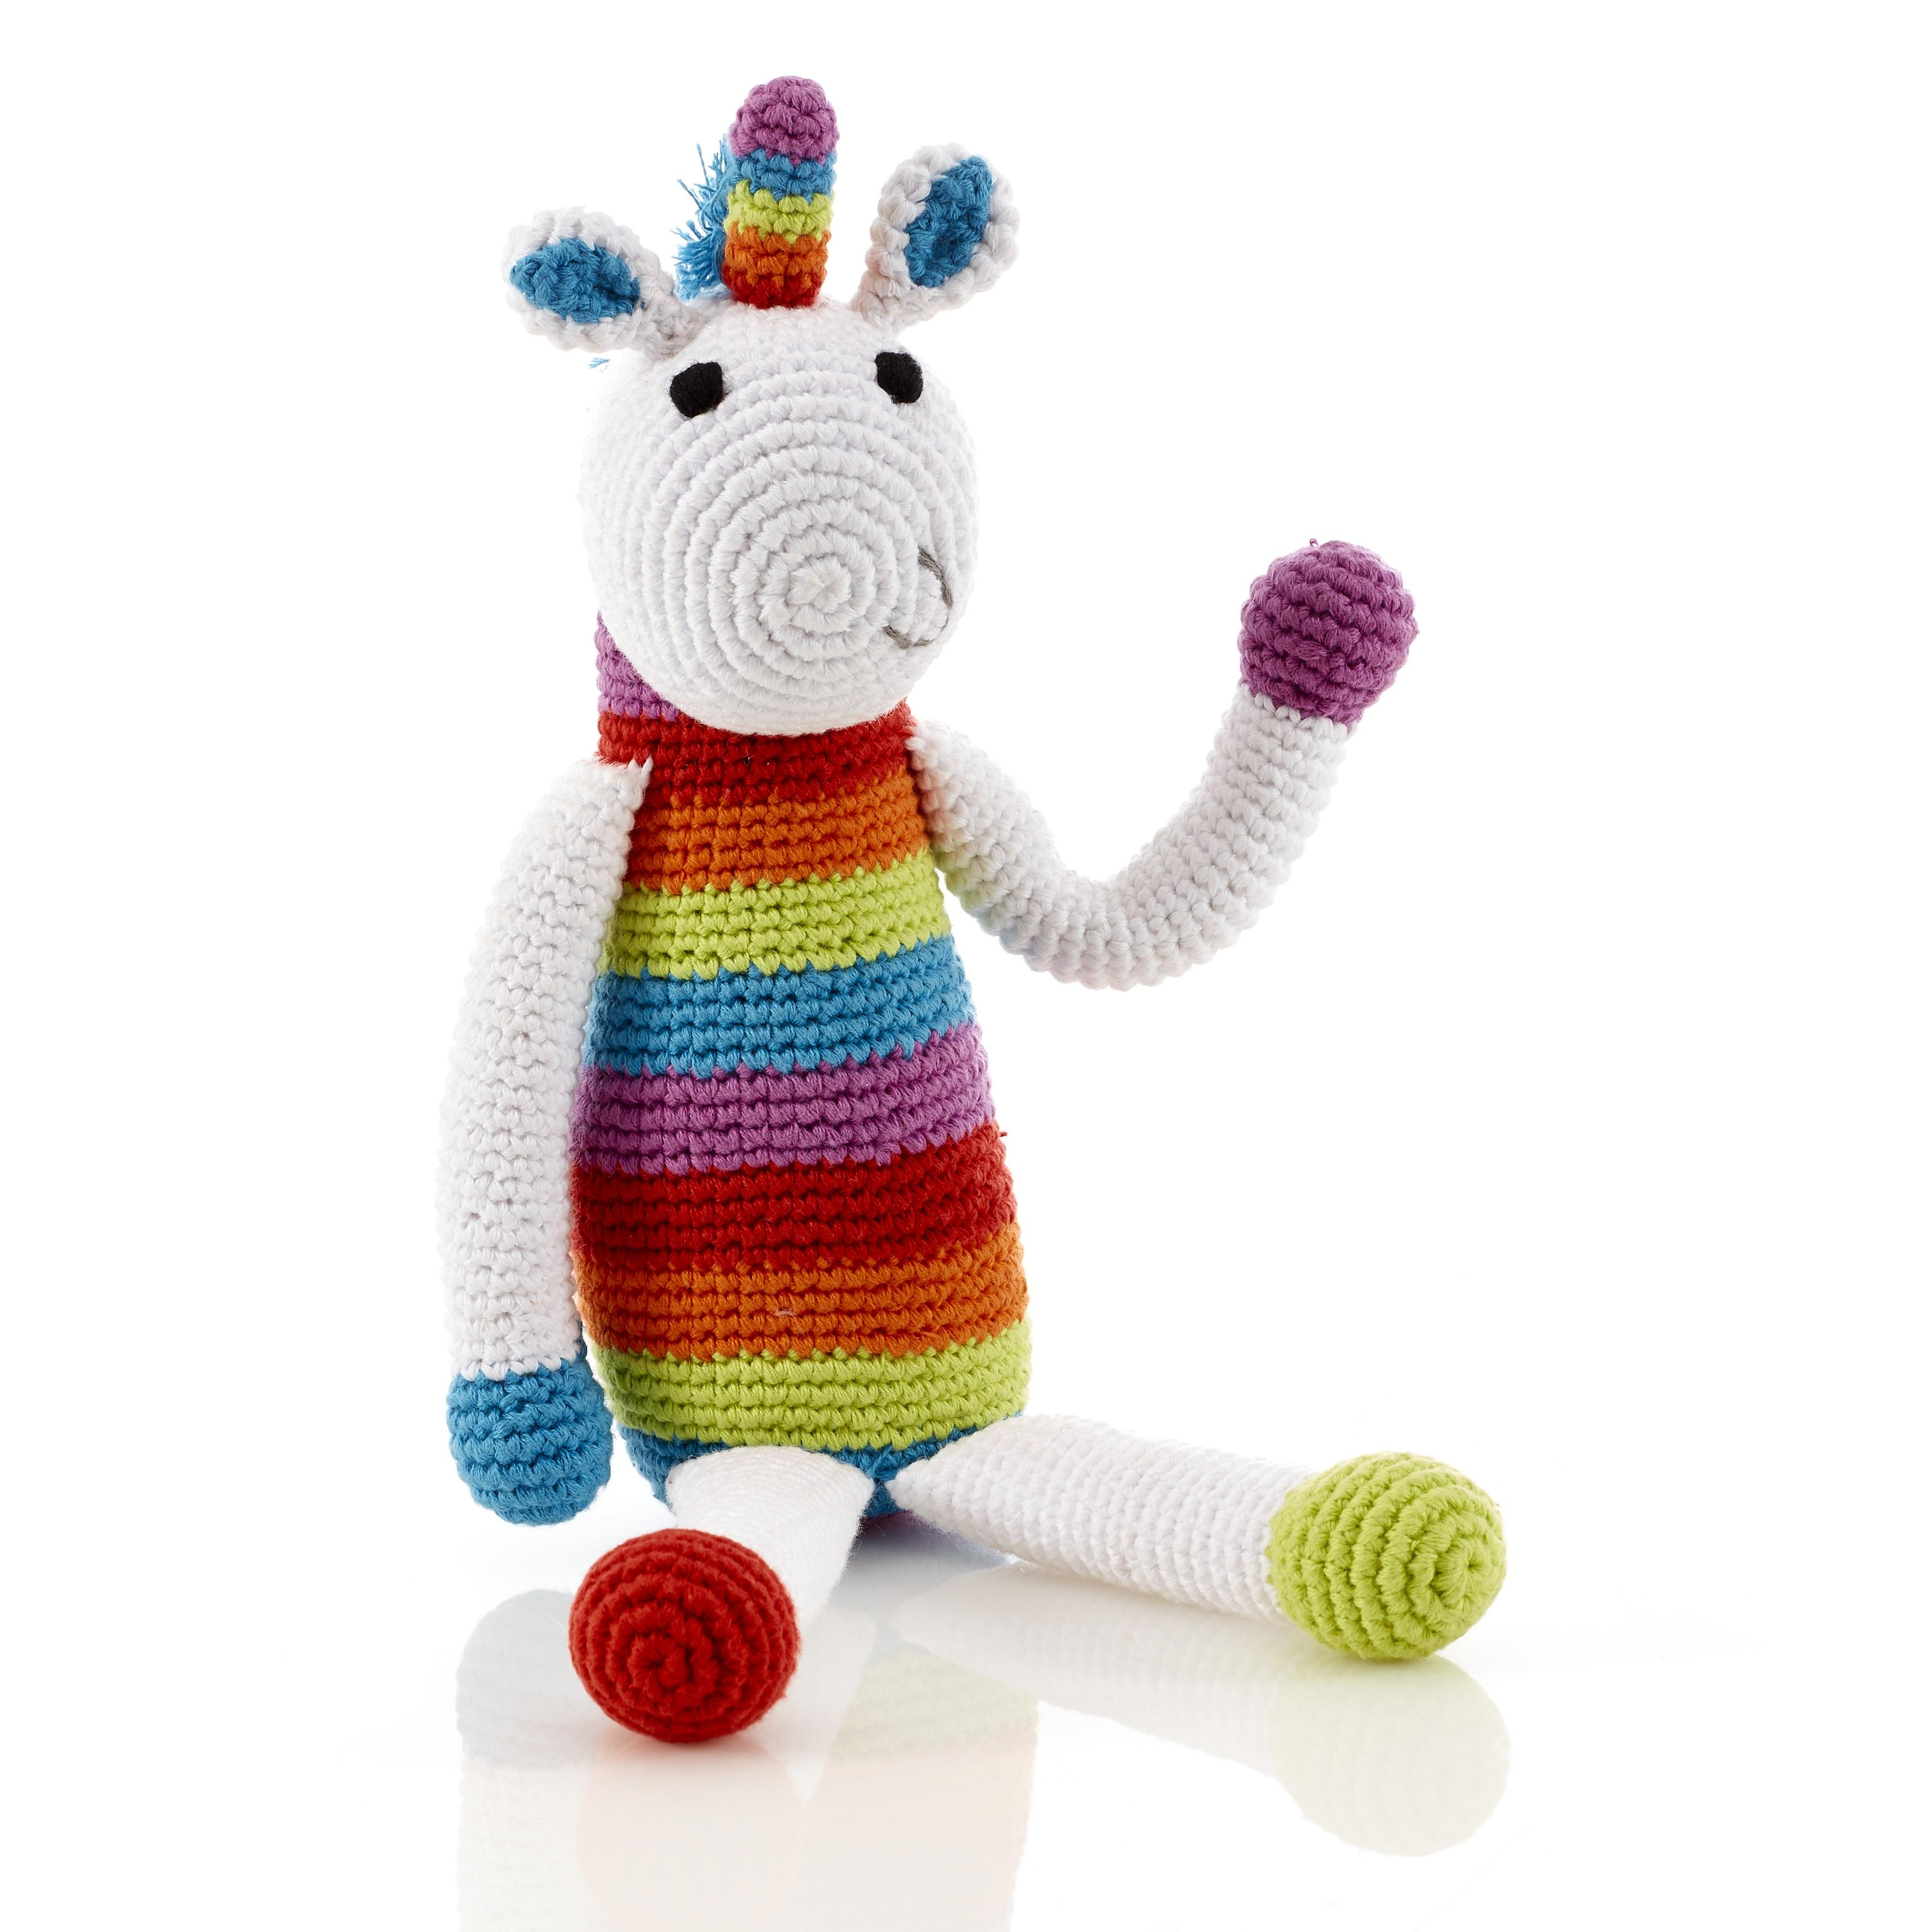 Unicorn baby rattle crochet from cotton with rainbow stripe body, white arms and colourful horn.